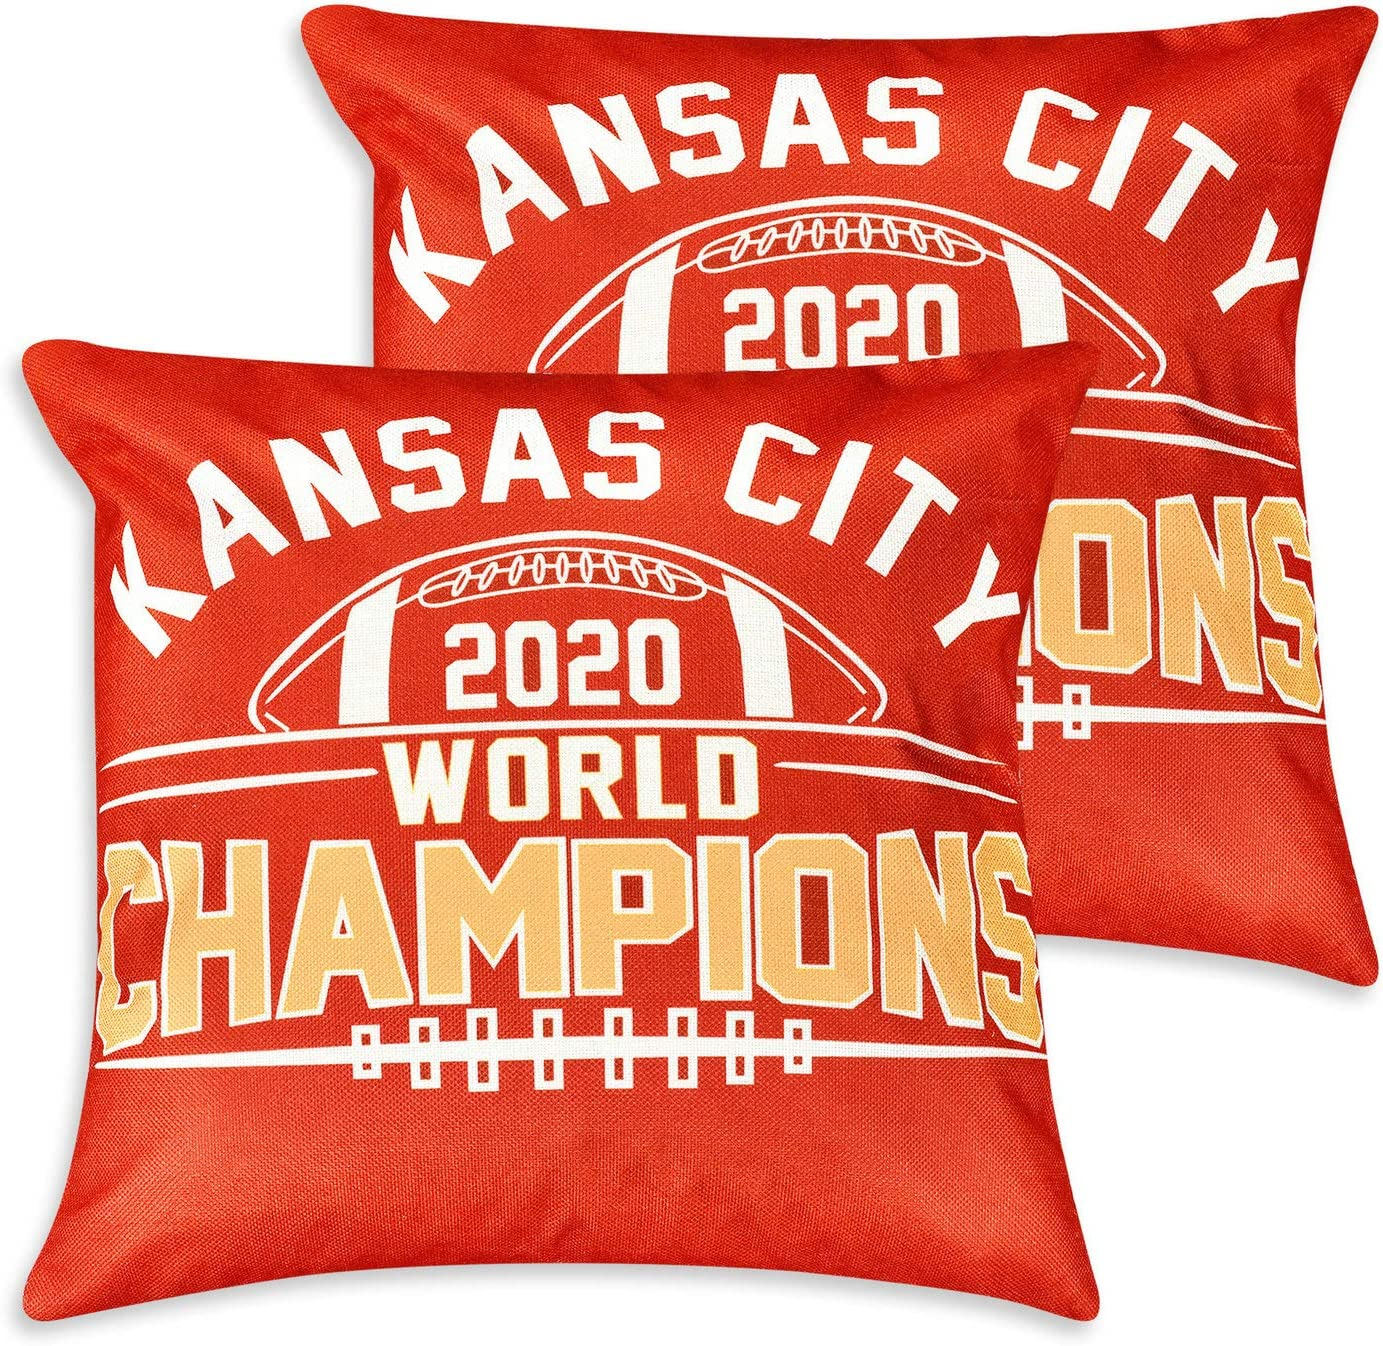 18 x 18 Set of 2pcs Football Team KC Chiefs 2020 Champions Throw Pillow Covers Pillow Cases Decorative Pillowcase Protecter with Zipper Without Insert